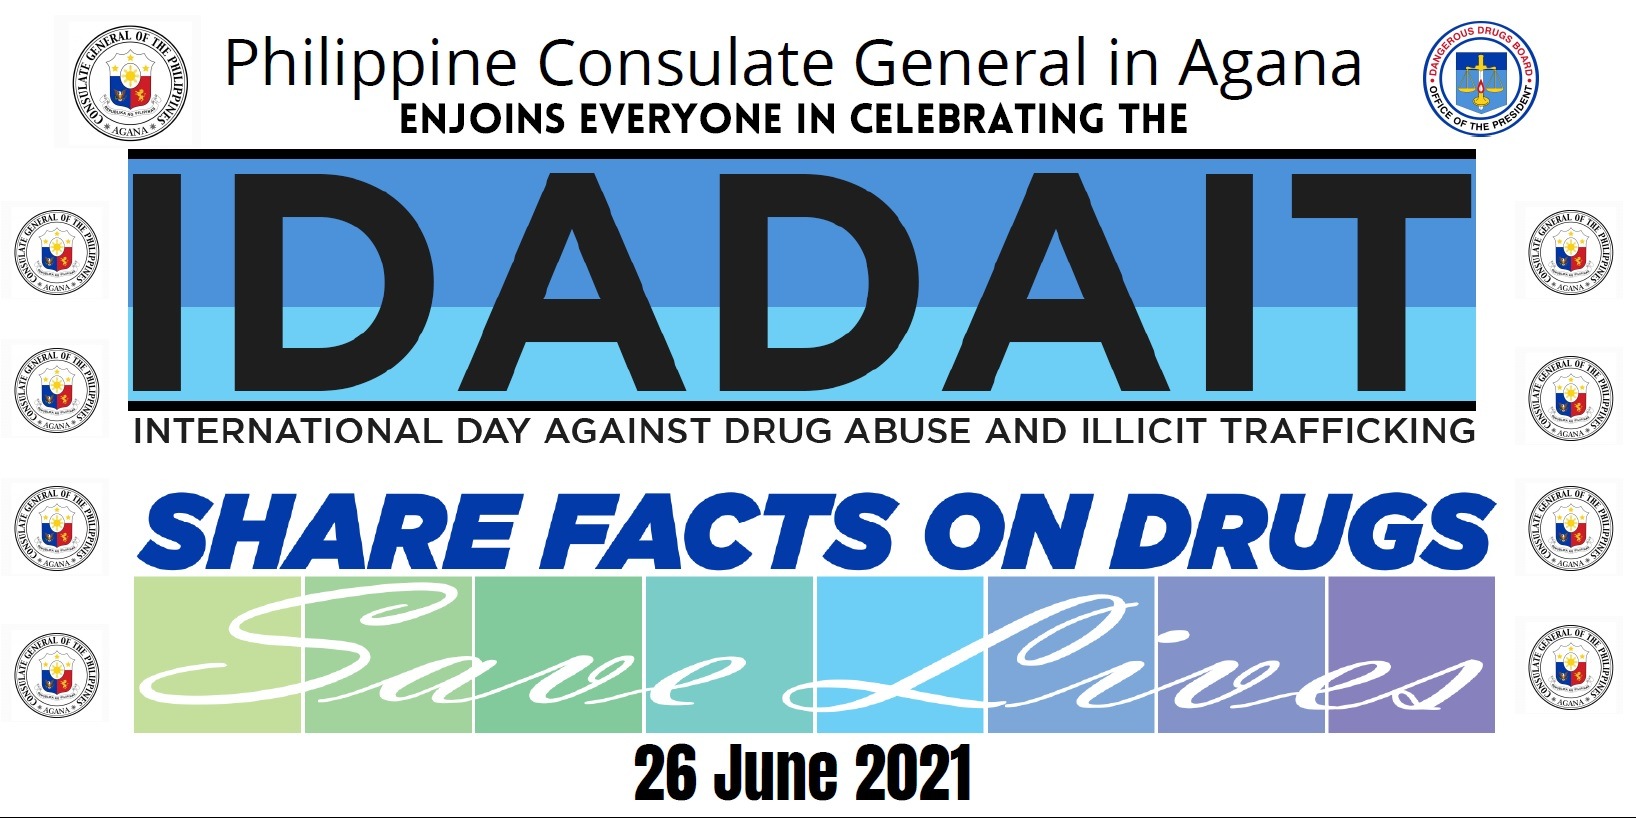 June 26th is the  International Day Against Drug Abuse and Illicit Trafficking